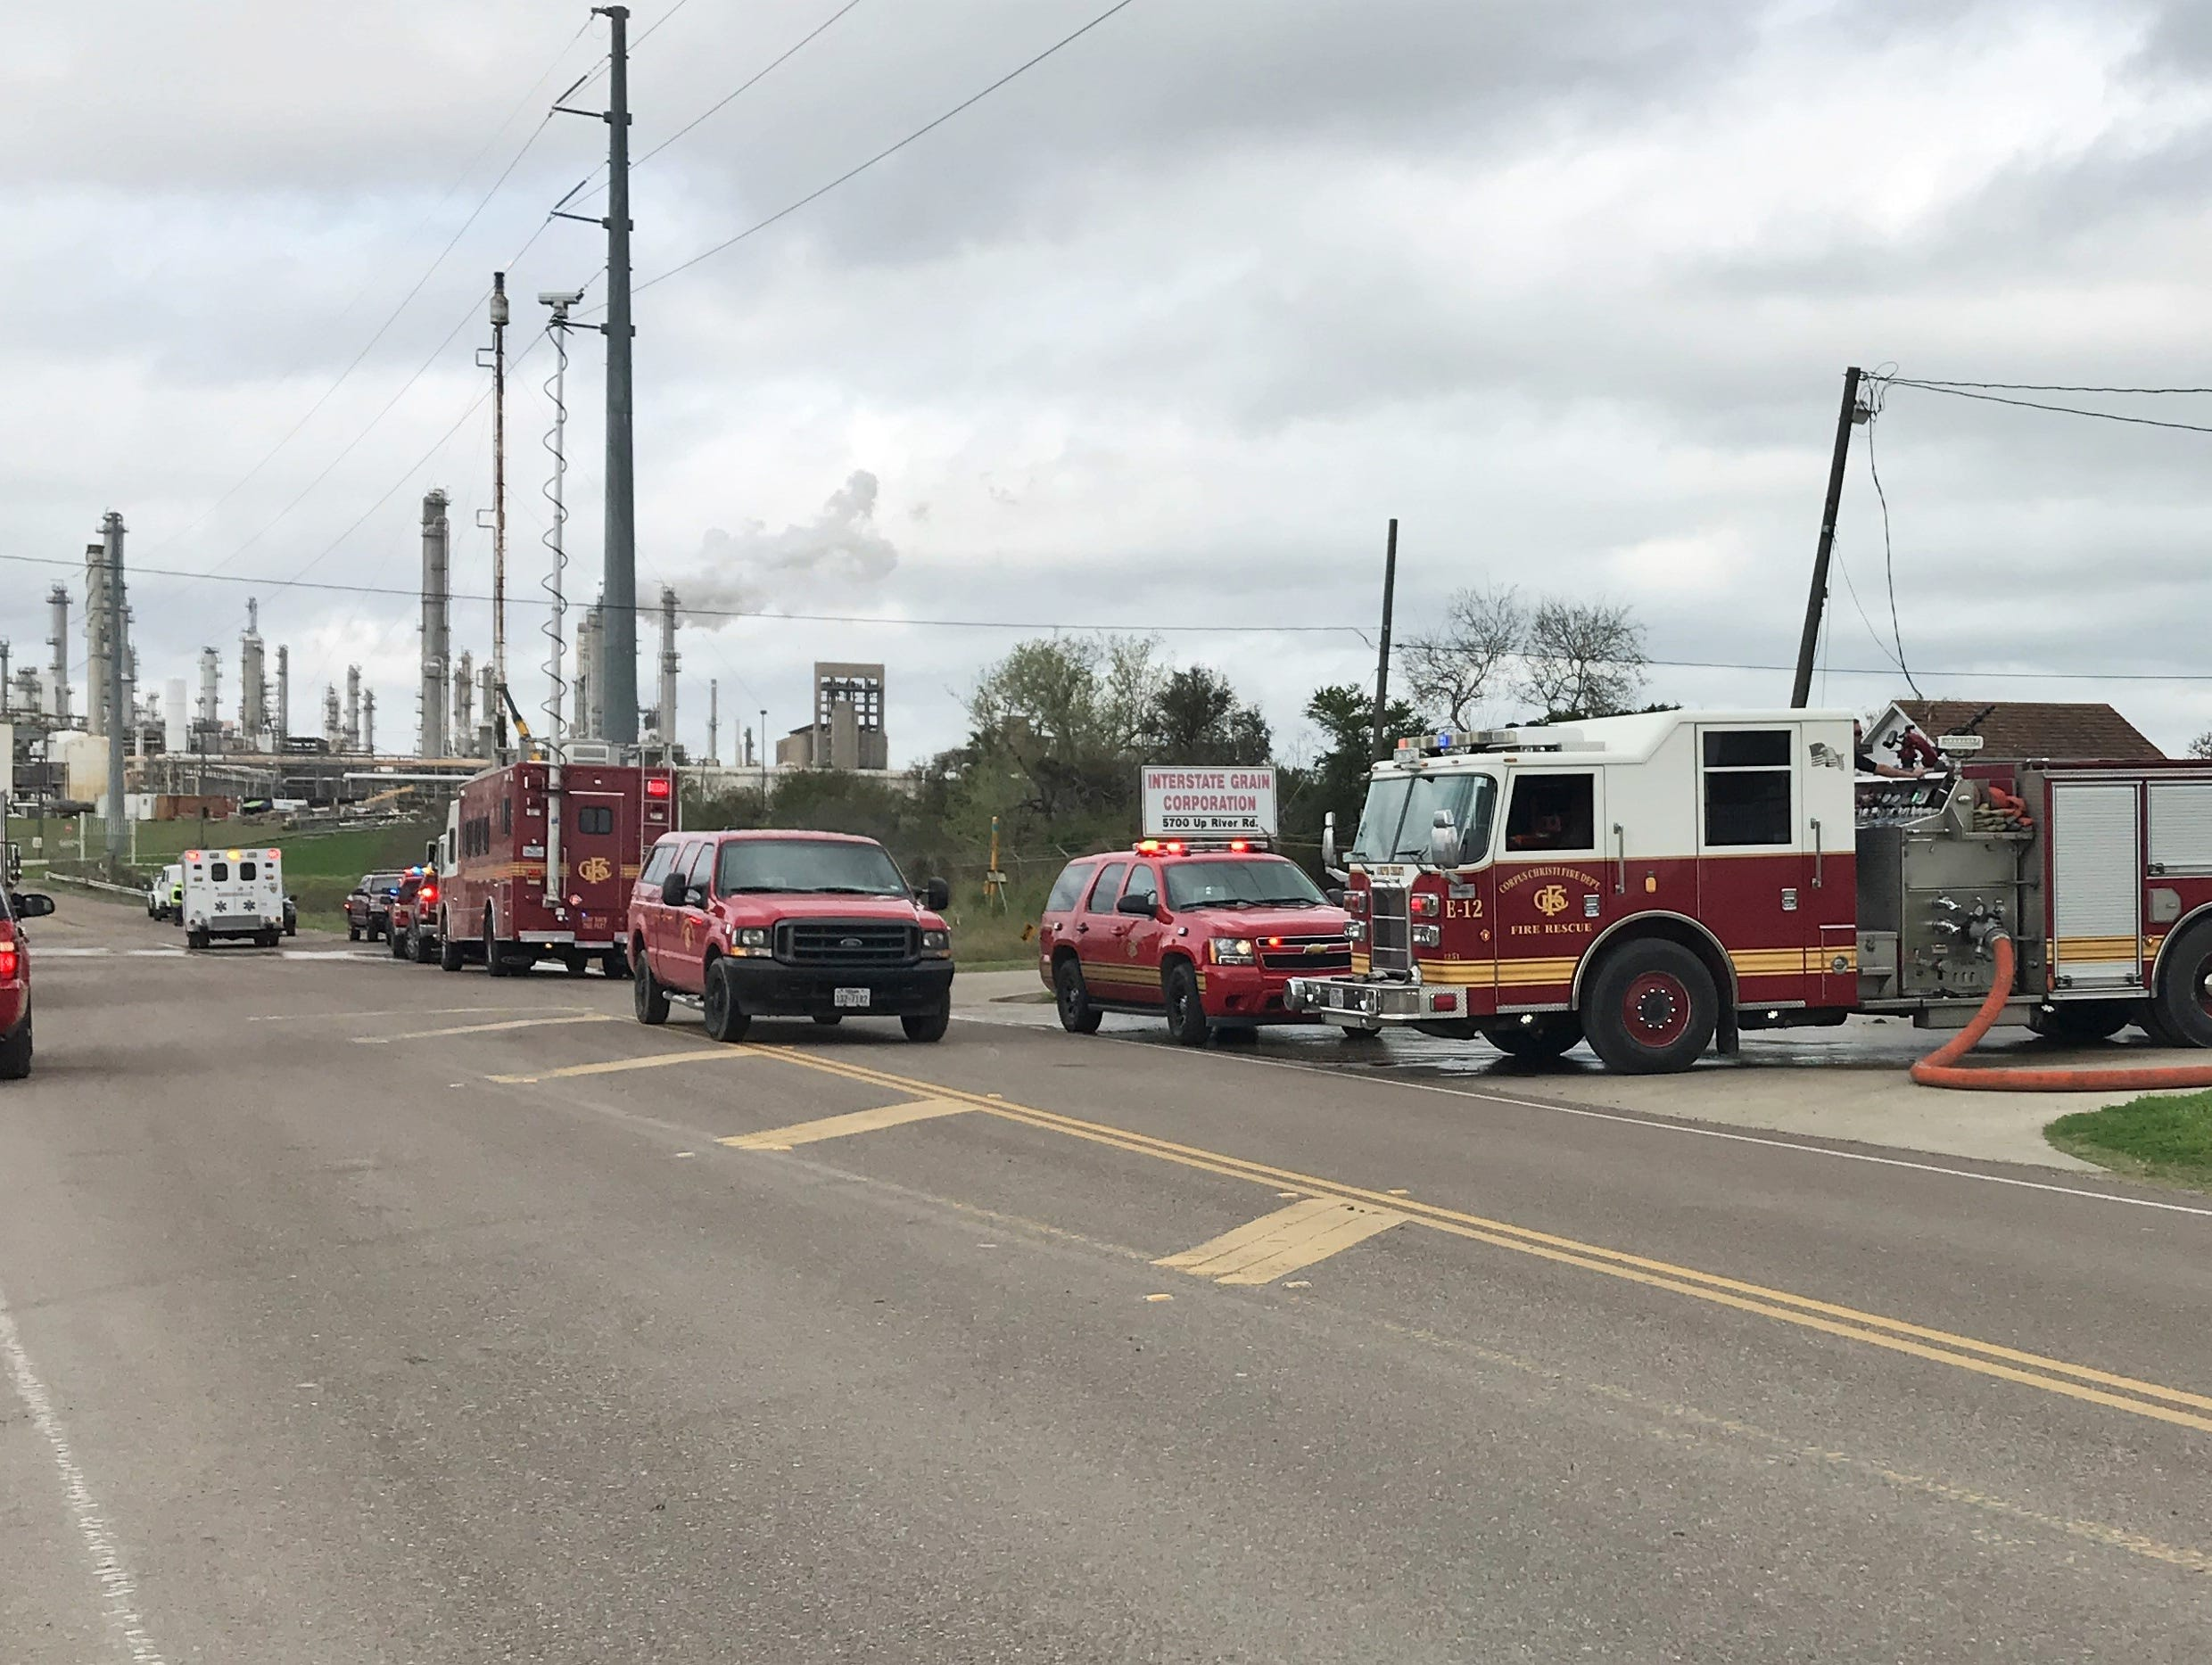 Corpus Christi fire crews work to extinguish a grain silo fire near the intersection of Up River Road and Lantana Street on Feb. 11, 2019.